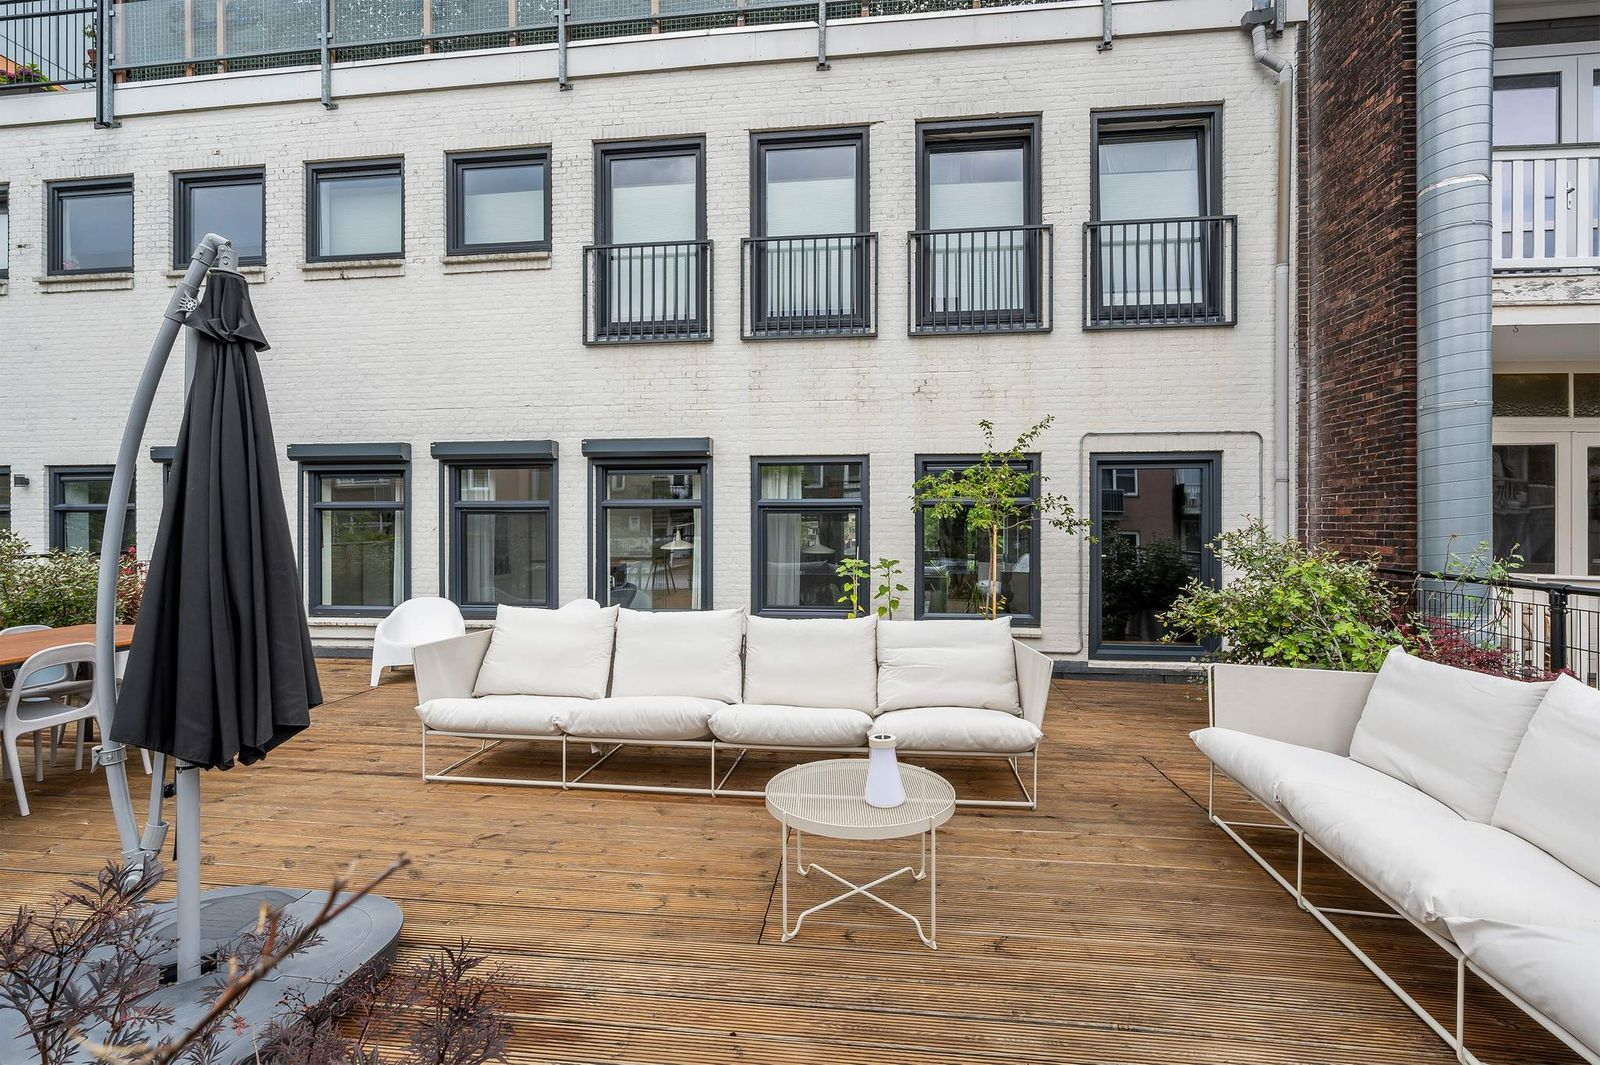 Coolhaven 166-a, Rotterdam